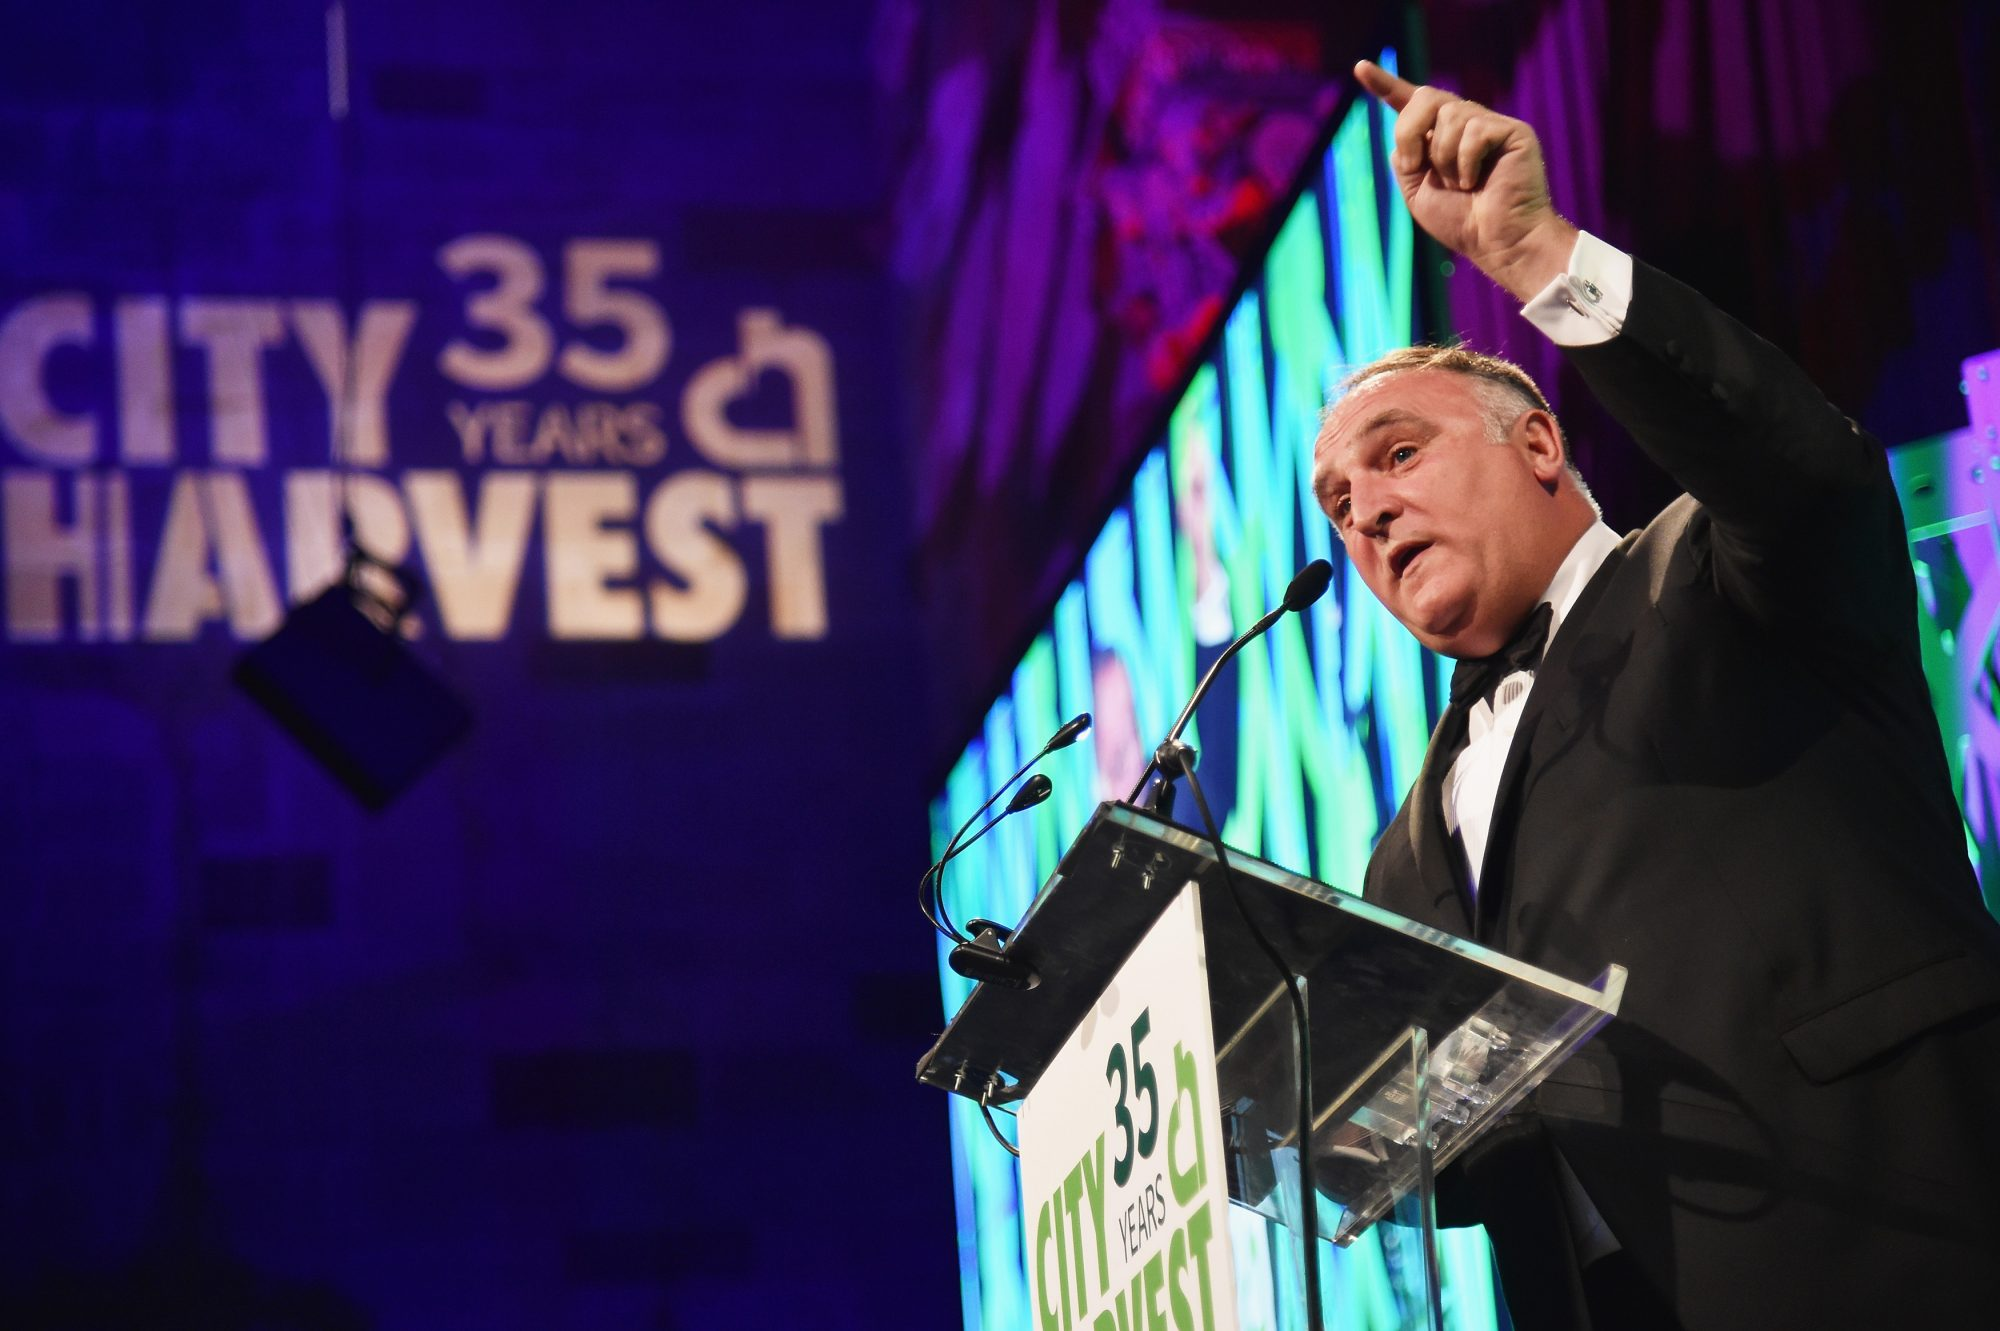 Jose-Andres-City-Harvest-Gala.jpg